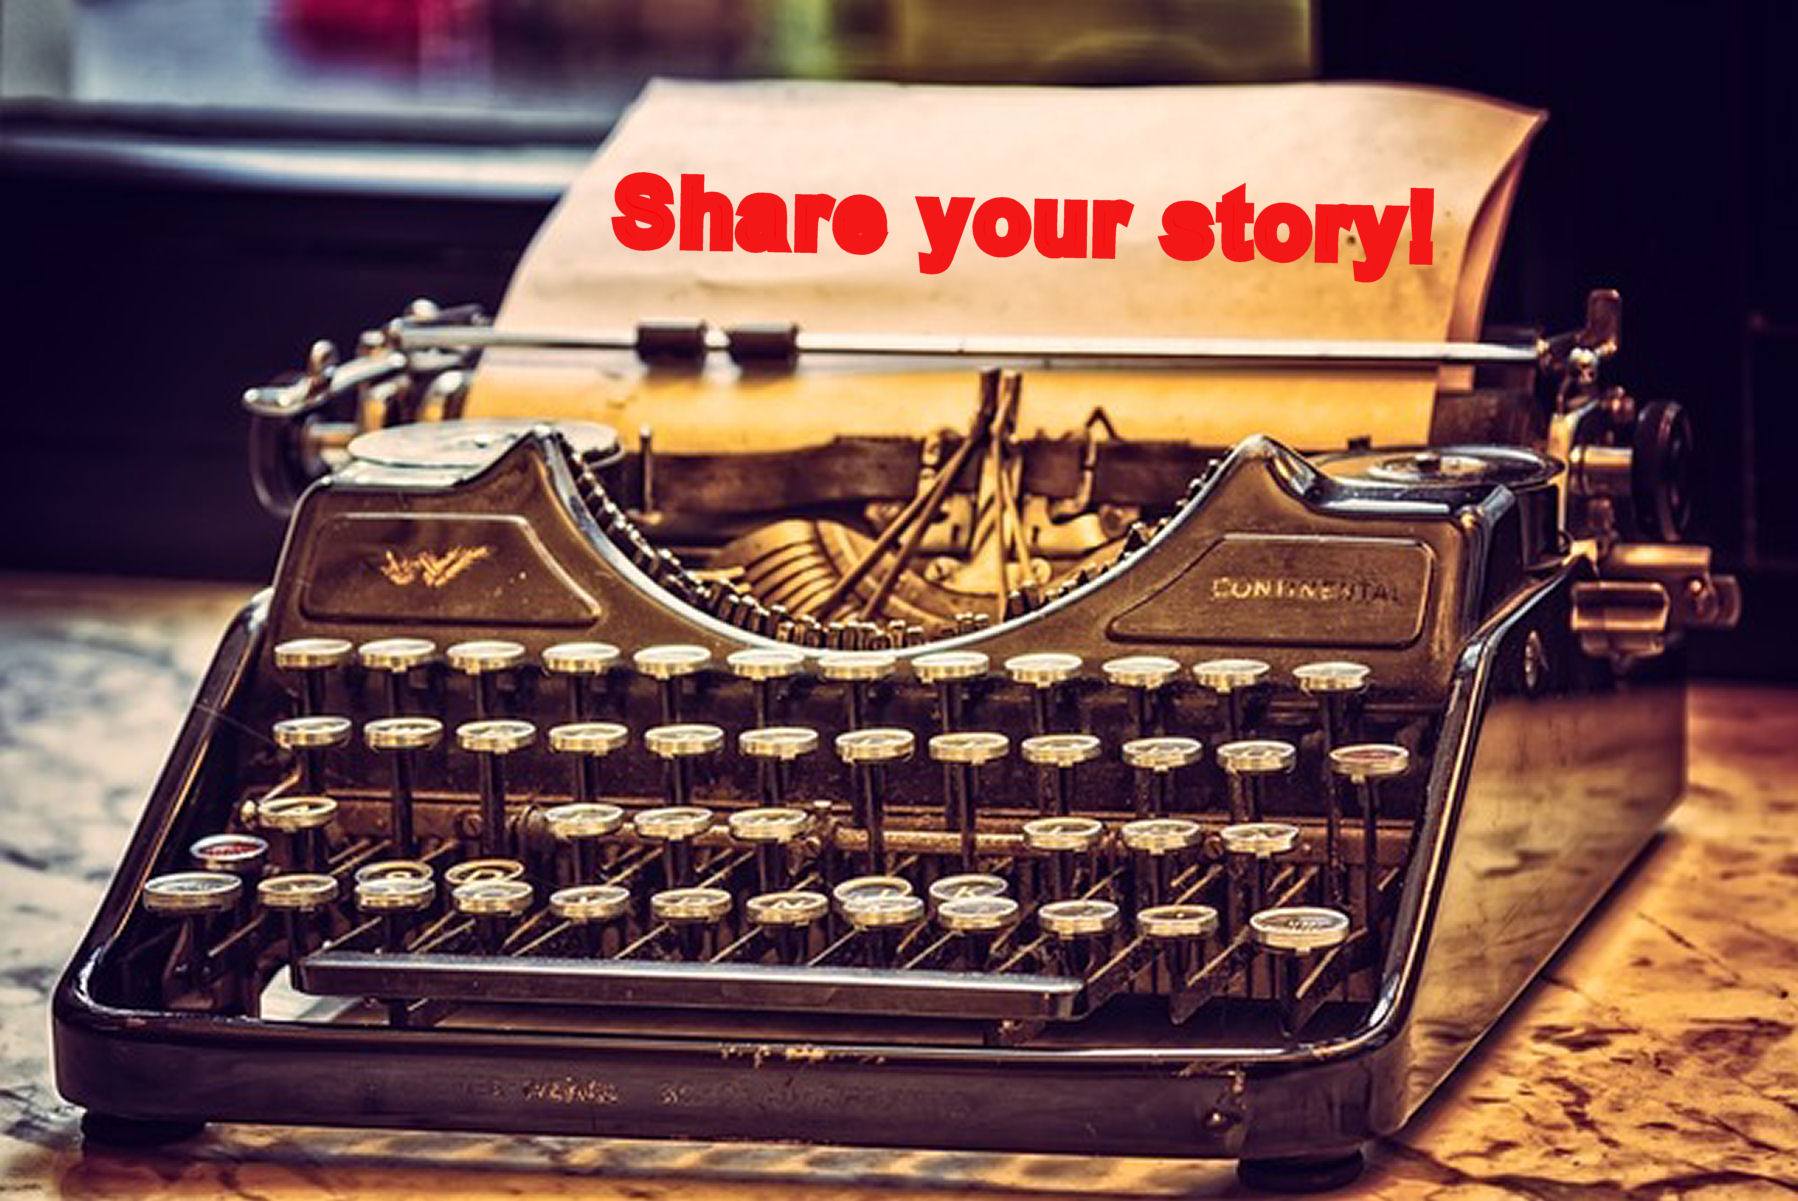 Create web content to share your story